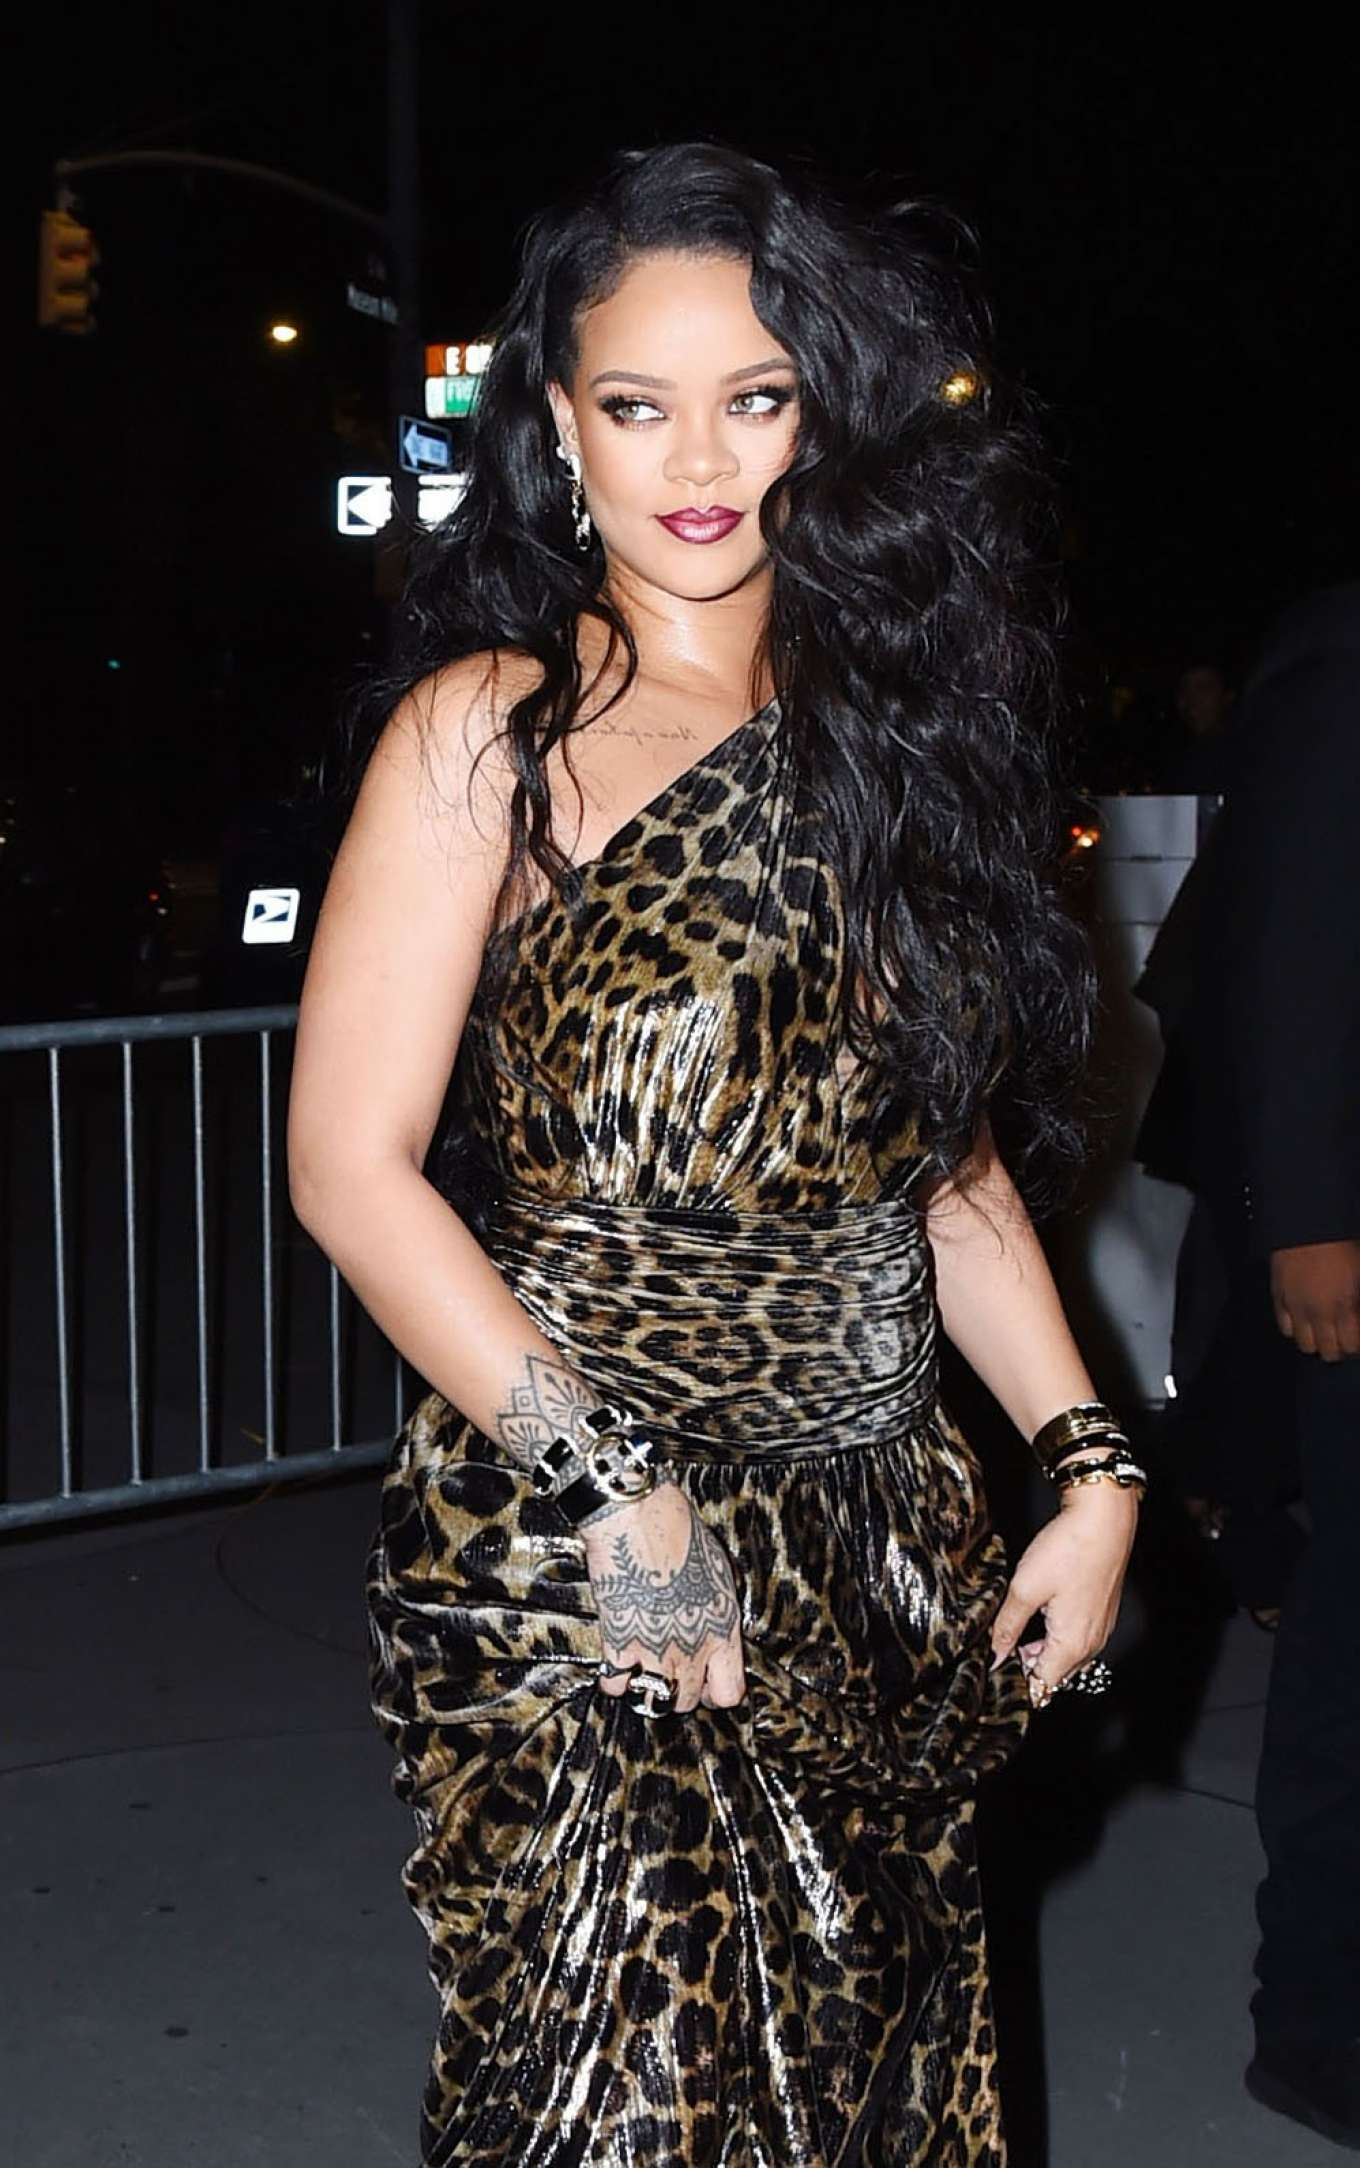 Rihanna - Arrives to the Guggenheim Museum to celebrate her new self-titled book in NYC